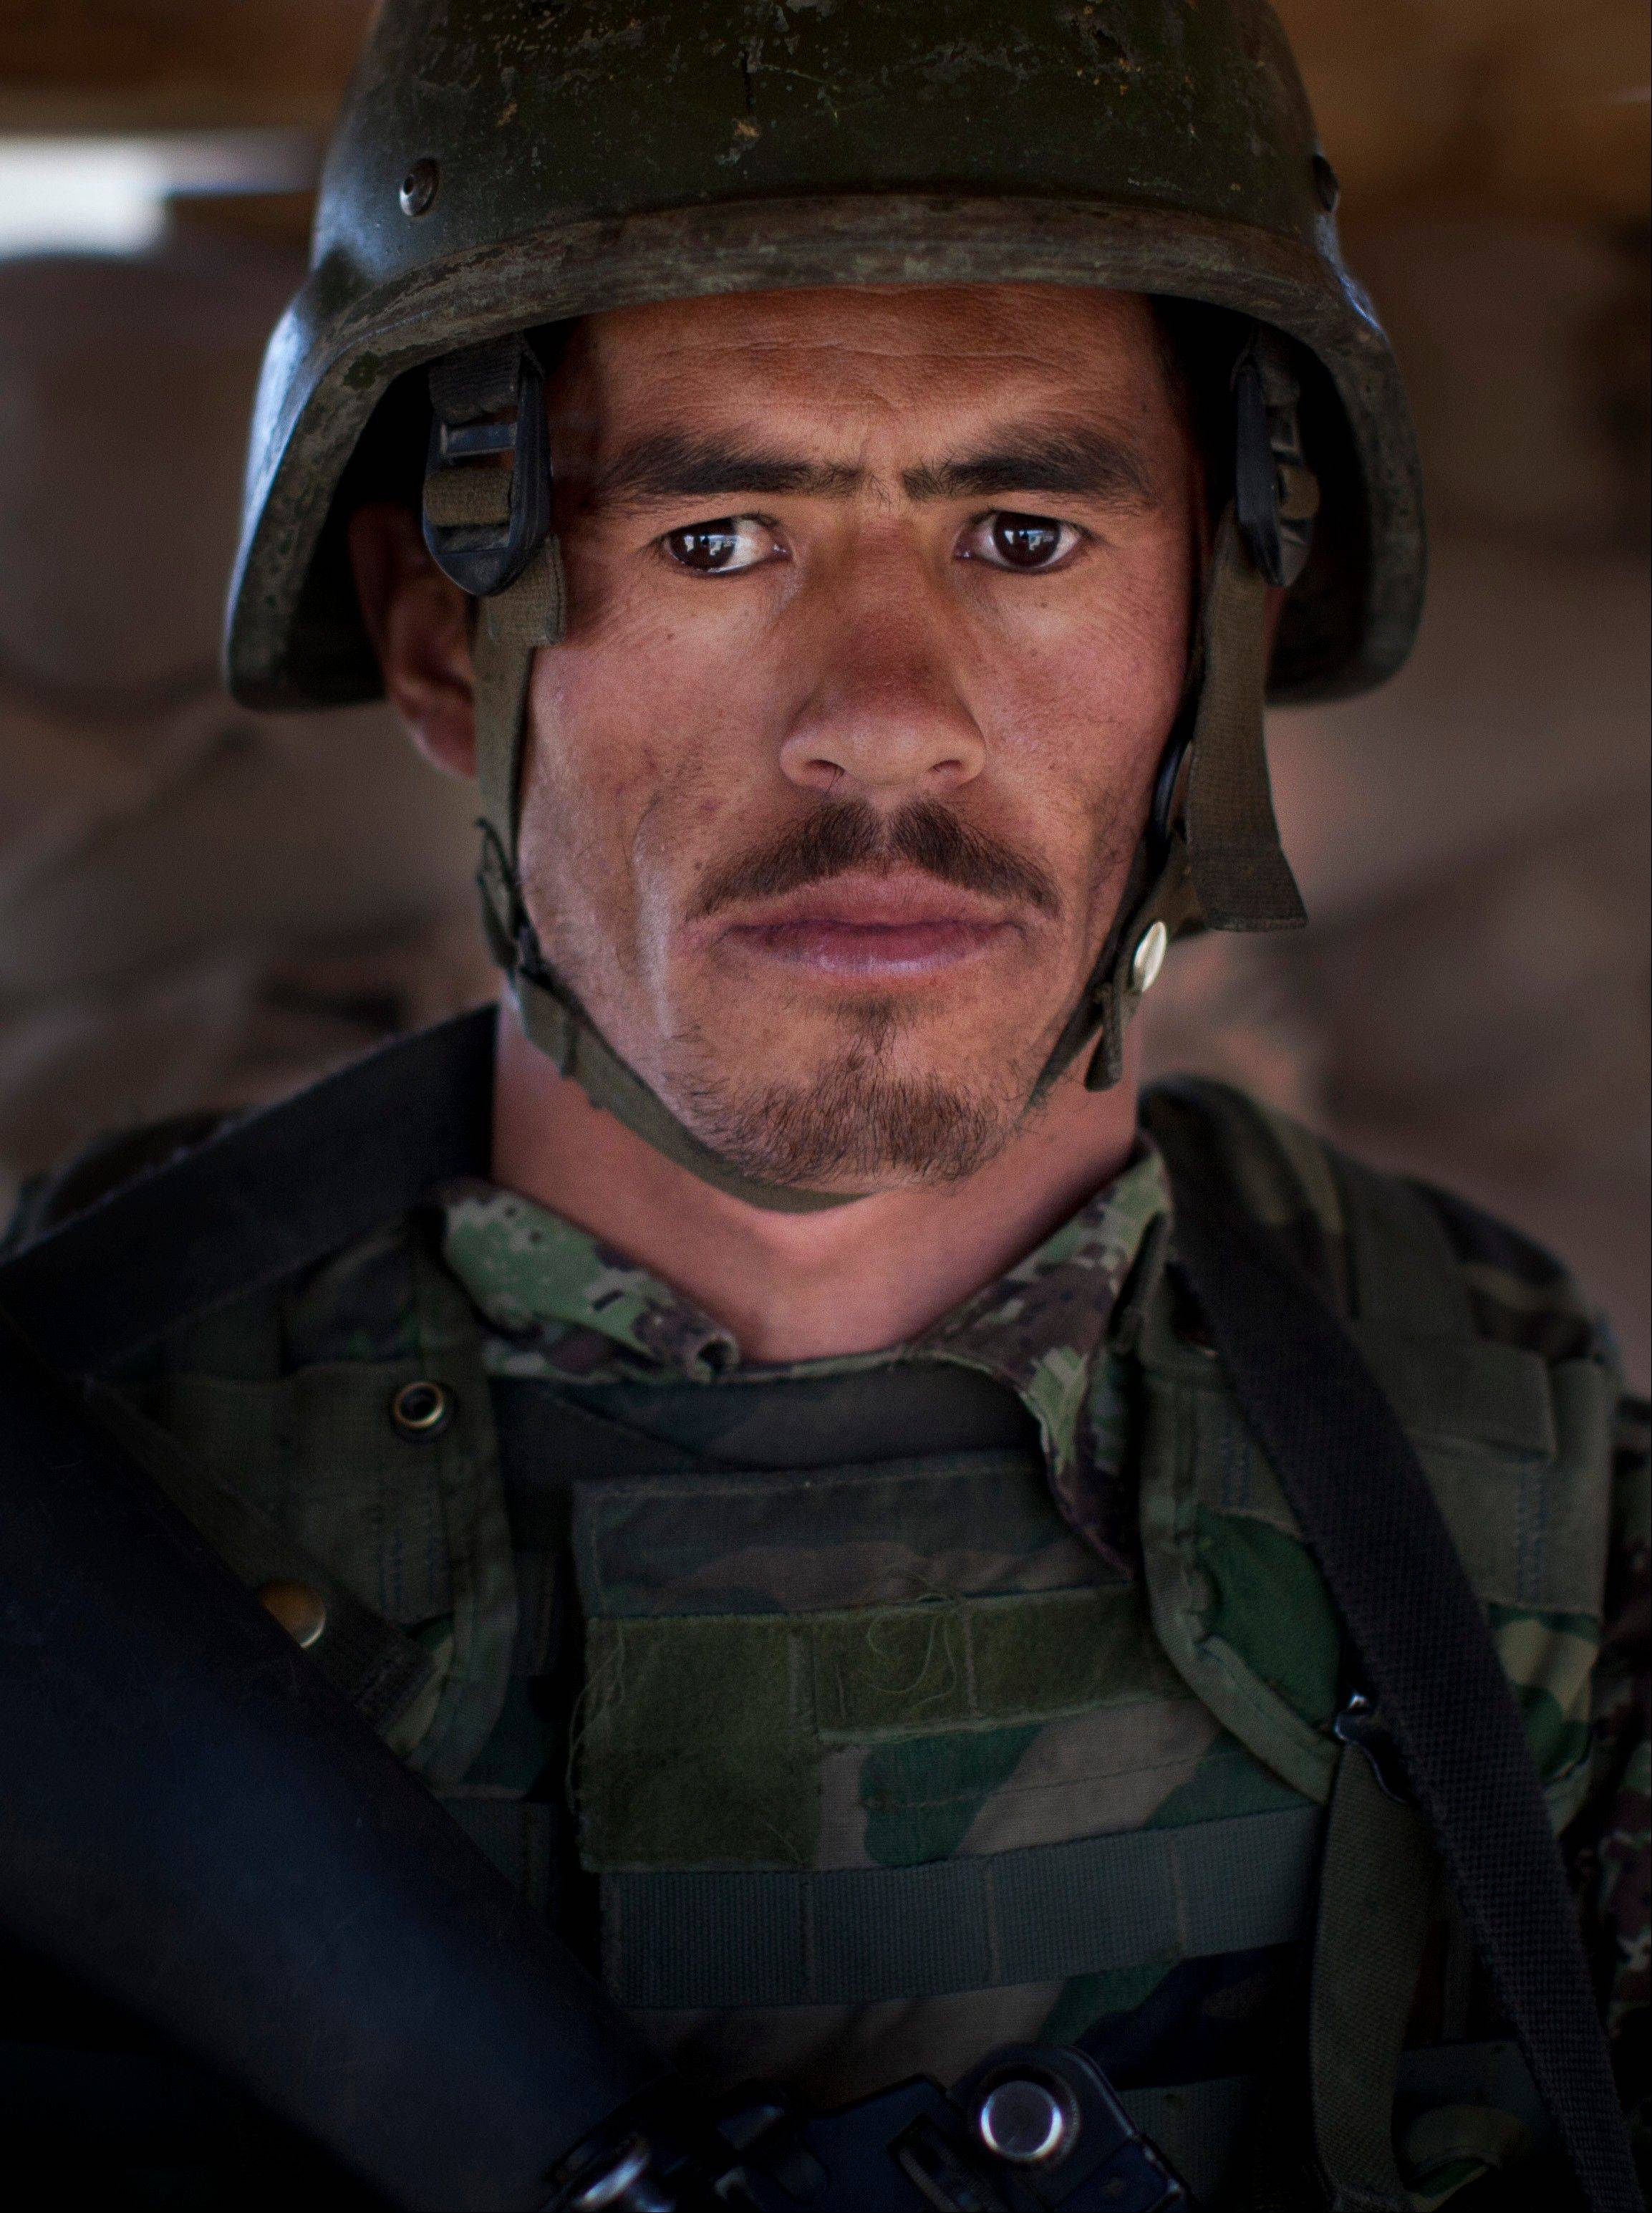 "Afghan National Army soldier Mohammed Khan, 21, poses Tuesday for a picture at the Chinari outpost in Logar province, east Afghanistan, wearing his unit's single helmet. At 21, his face is weathered and lined making him look older than his years. Khan is a new recruit from Afghanistan's northern Baghlan province and the only son of an elderly father who can no longer work. He says the Afghan National Army can defend the country after 2014 -- ""I have trust and belief in the ANA"" -- and thinks Afghanistan will be better off once the foreign forces are gone ""because when they are gone, we will be more able to control our country."" He hasn't yet been under fire but said: ""I am not afraid of the Taliban. I am only afraid of God."""